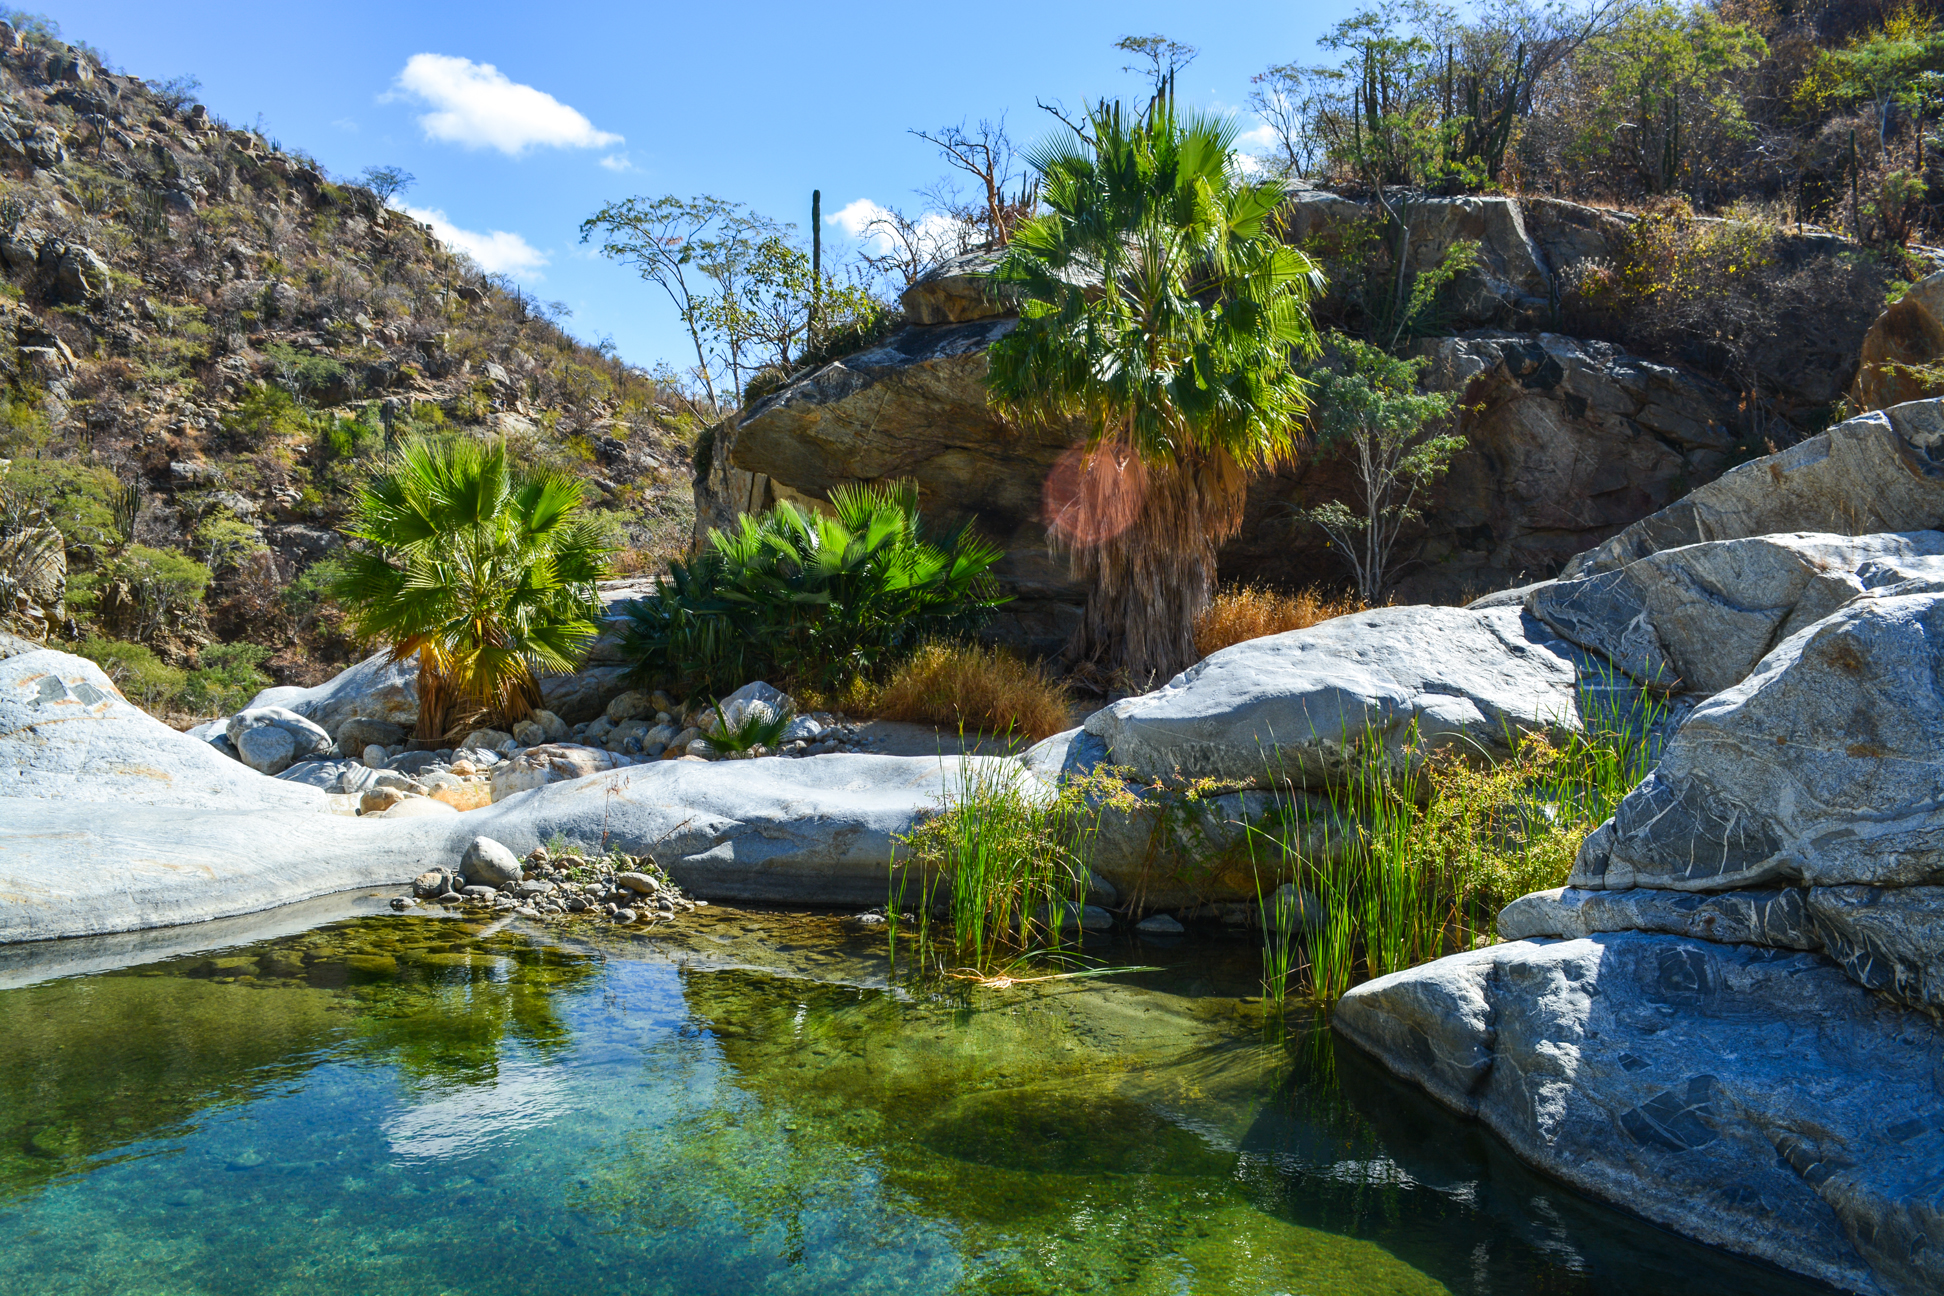 Private guided Fox Canyon hike in Cabo: Mexico hiking day trip